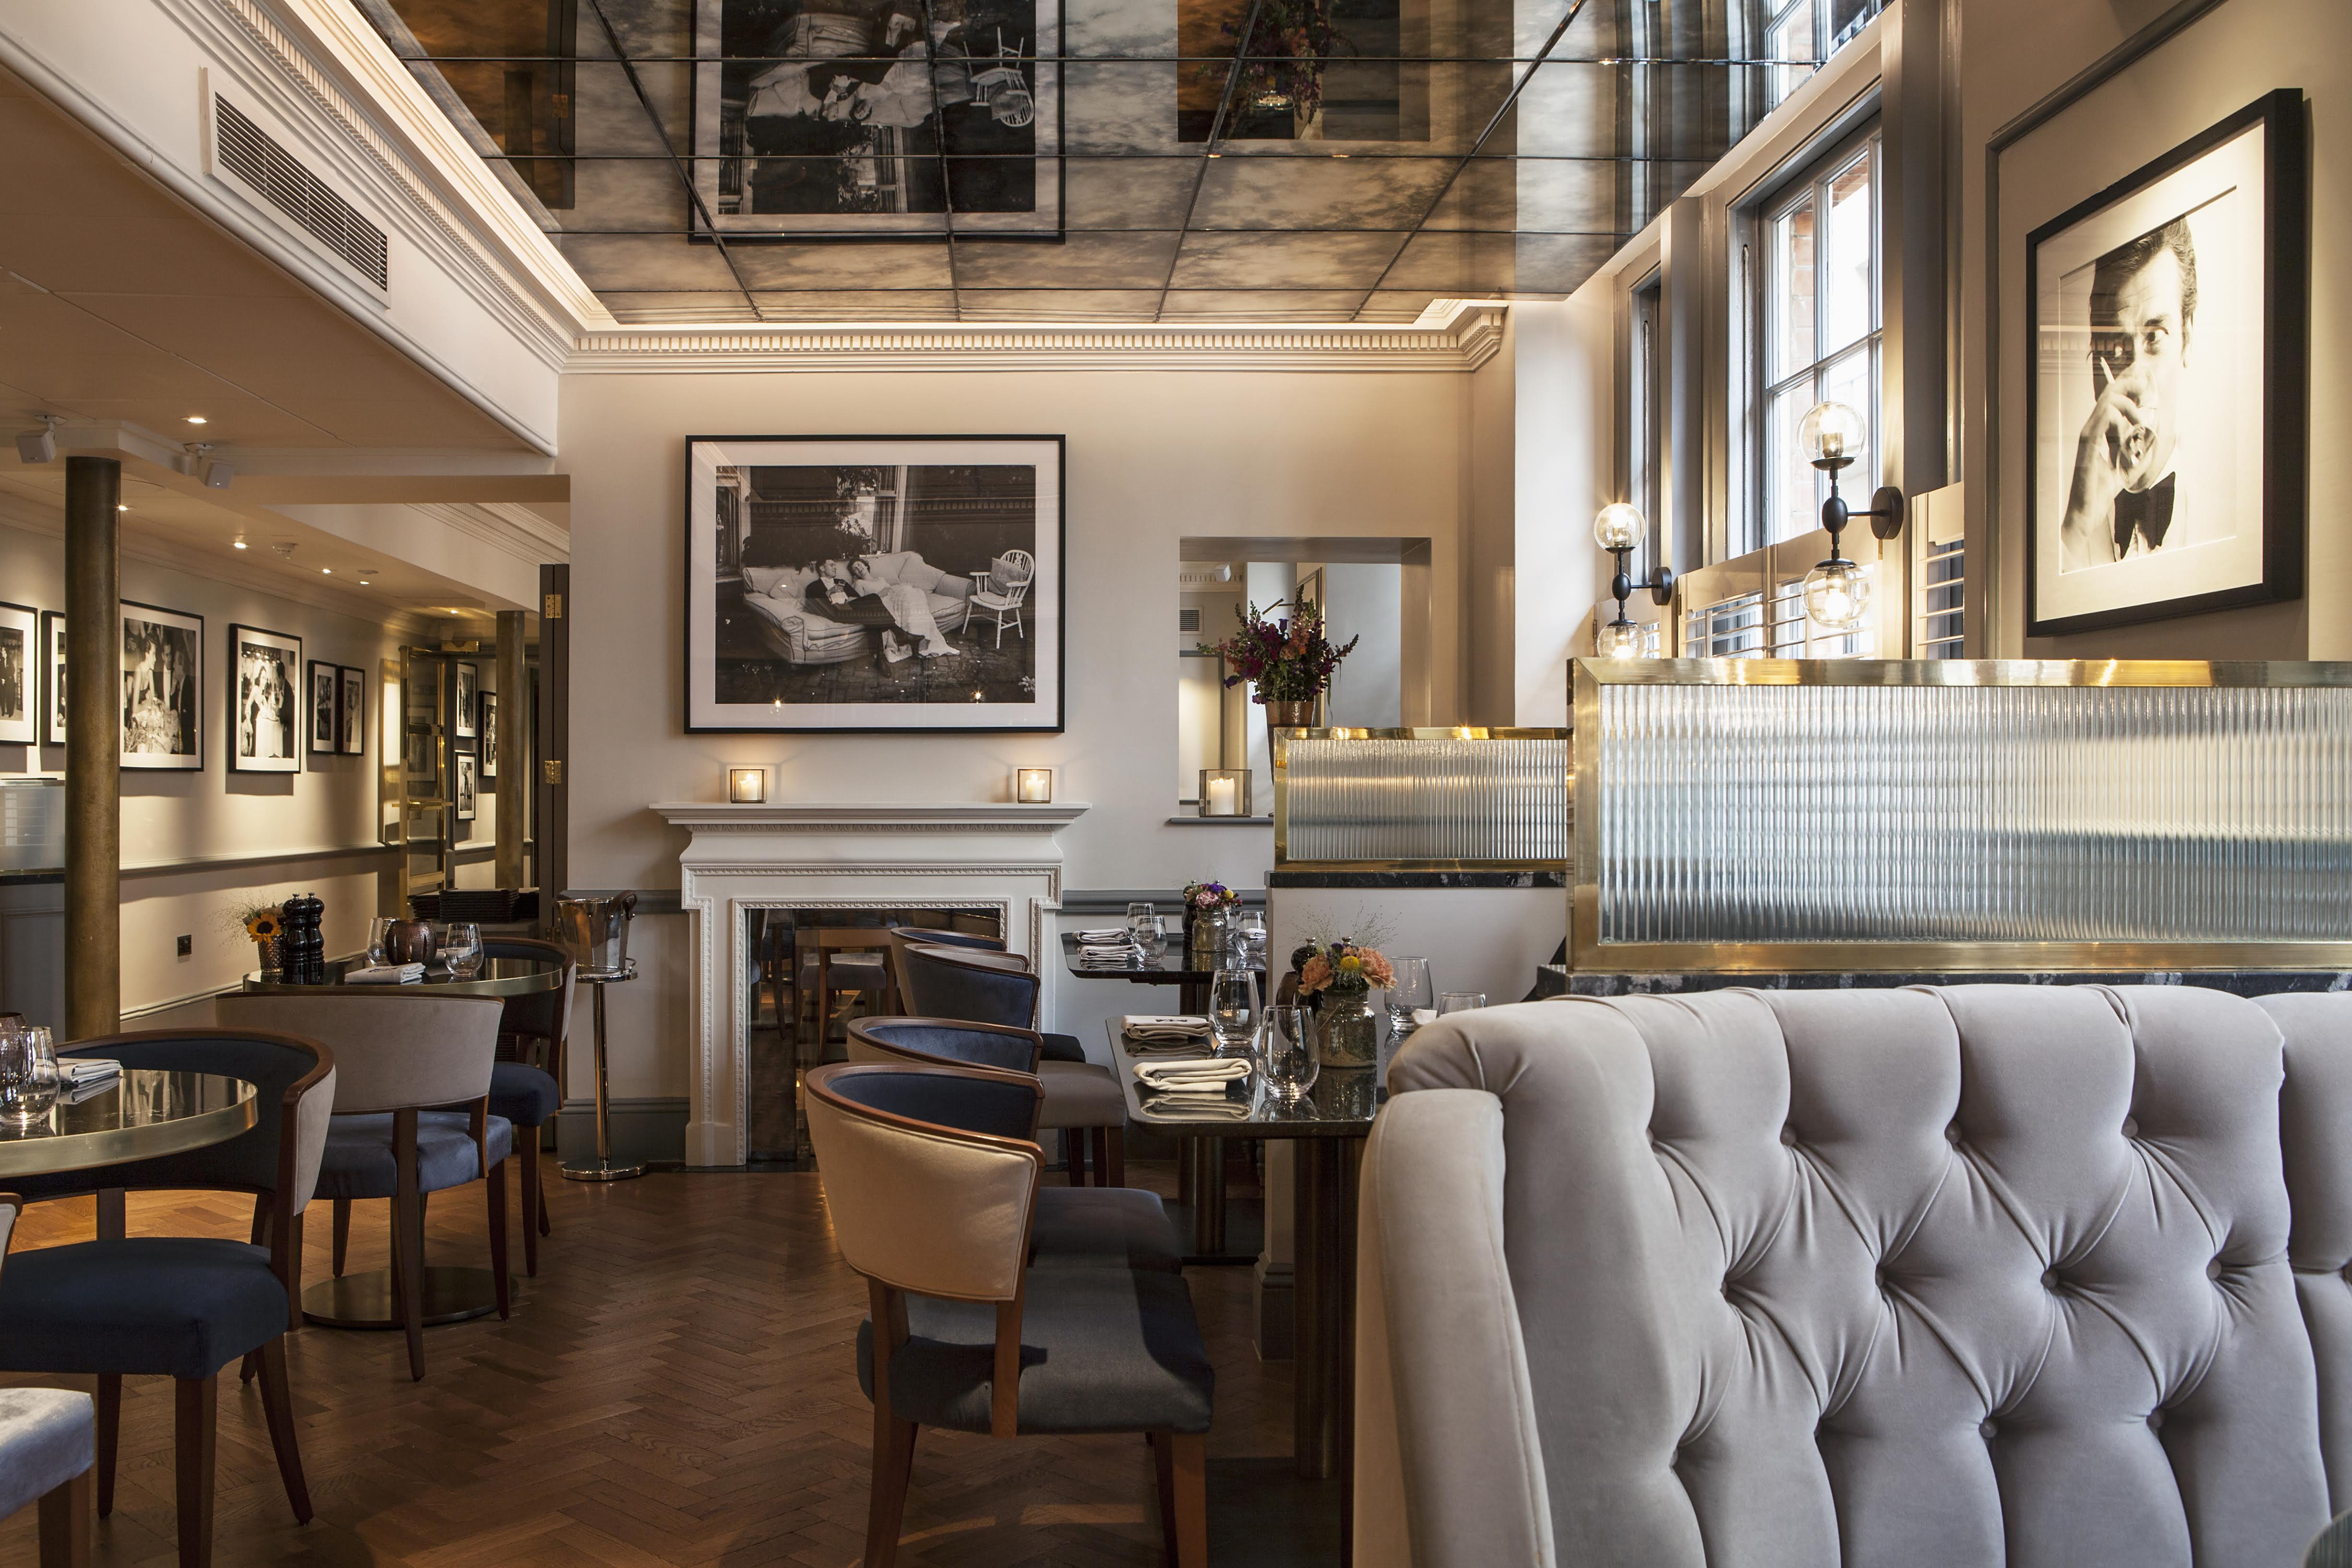 Dukes london dining room DUKES LONDON raises a glass to the late Karl Lagerfeld - EAT LOVE SAVOR International luxury lifestyle magazine and bookazines